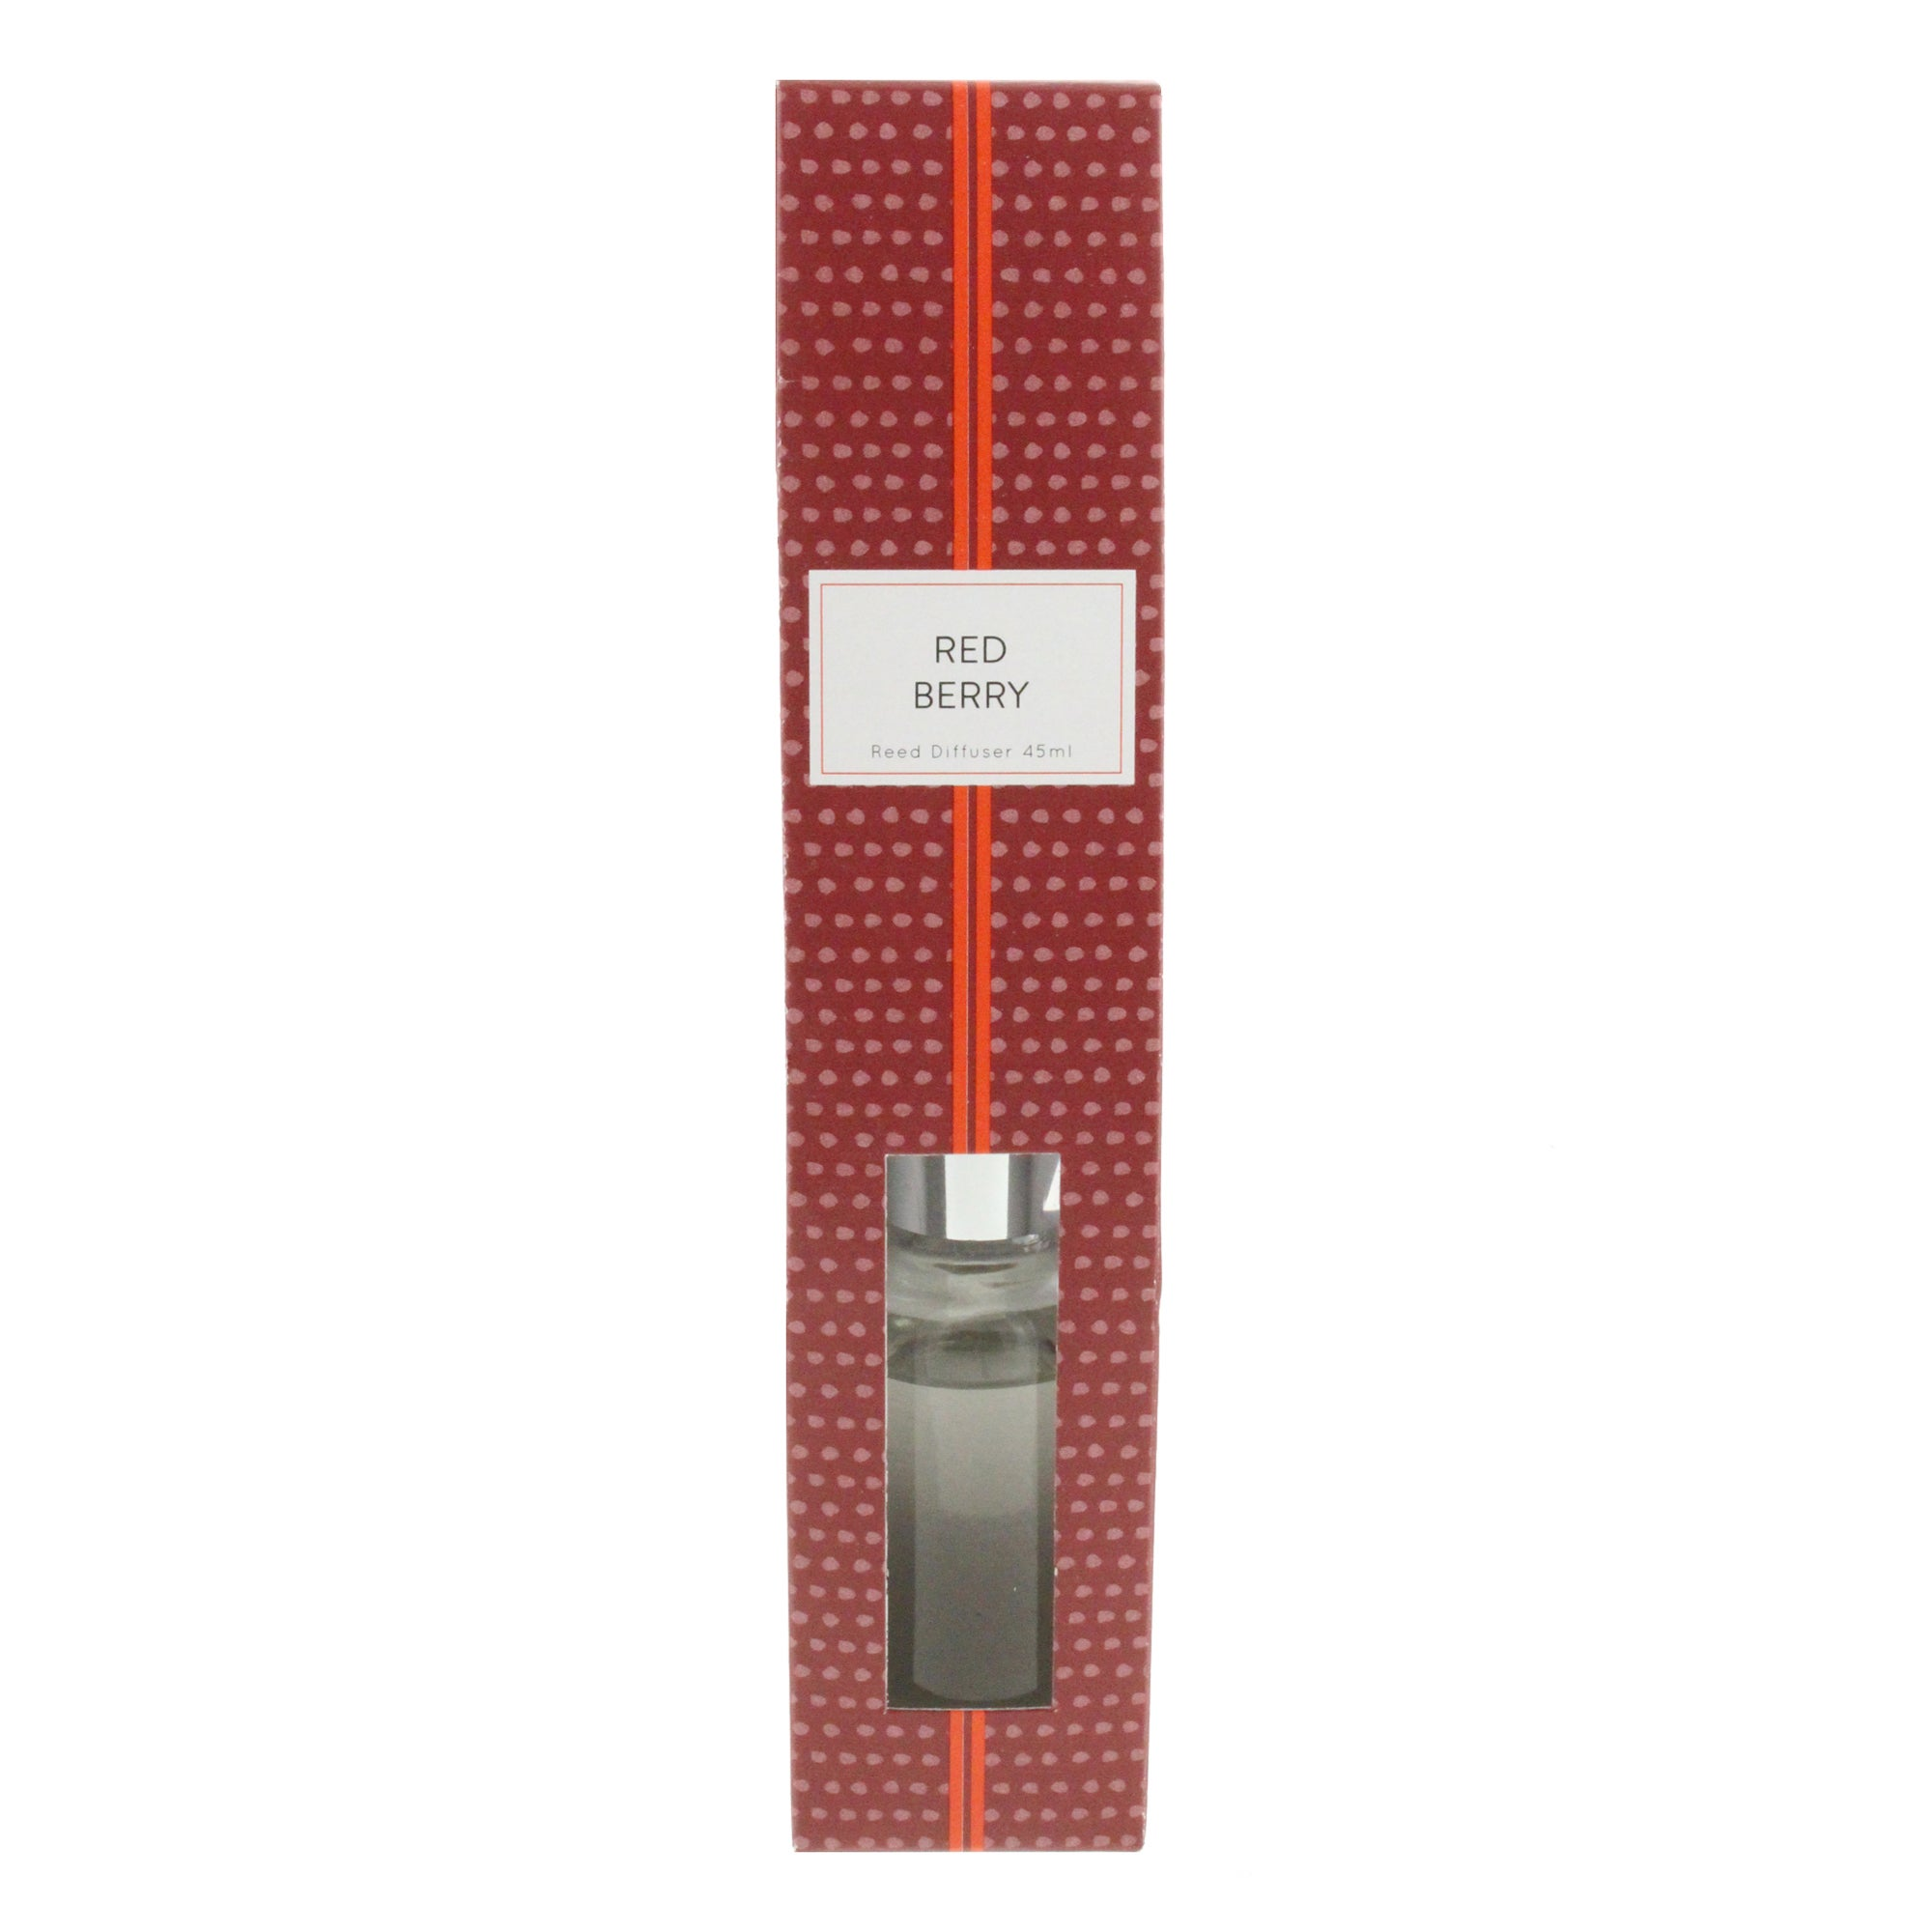 Home Fragrance Red Berry 45ml Reed Diffuser